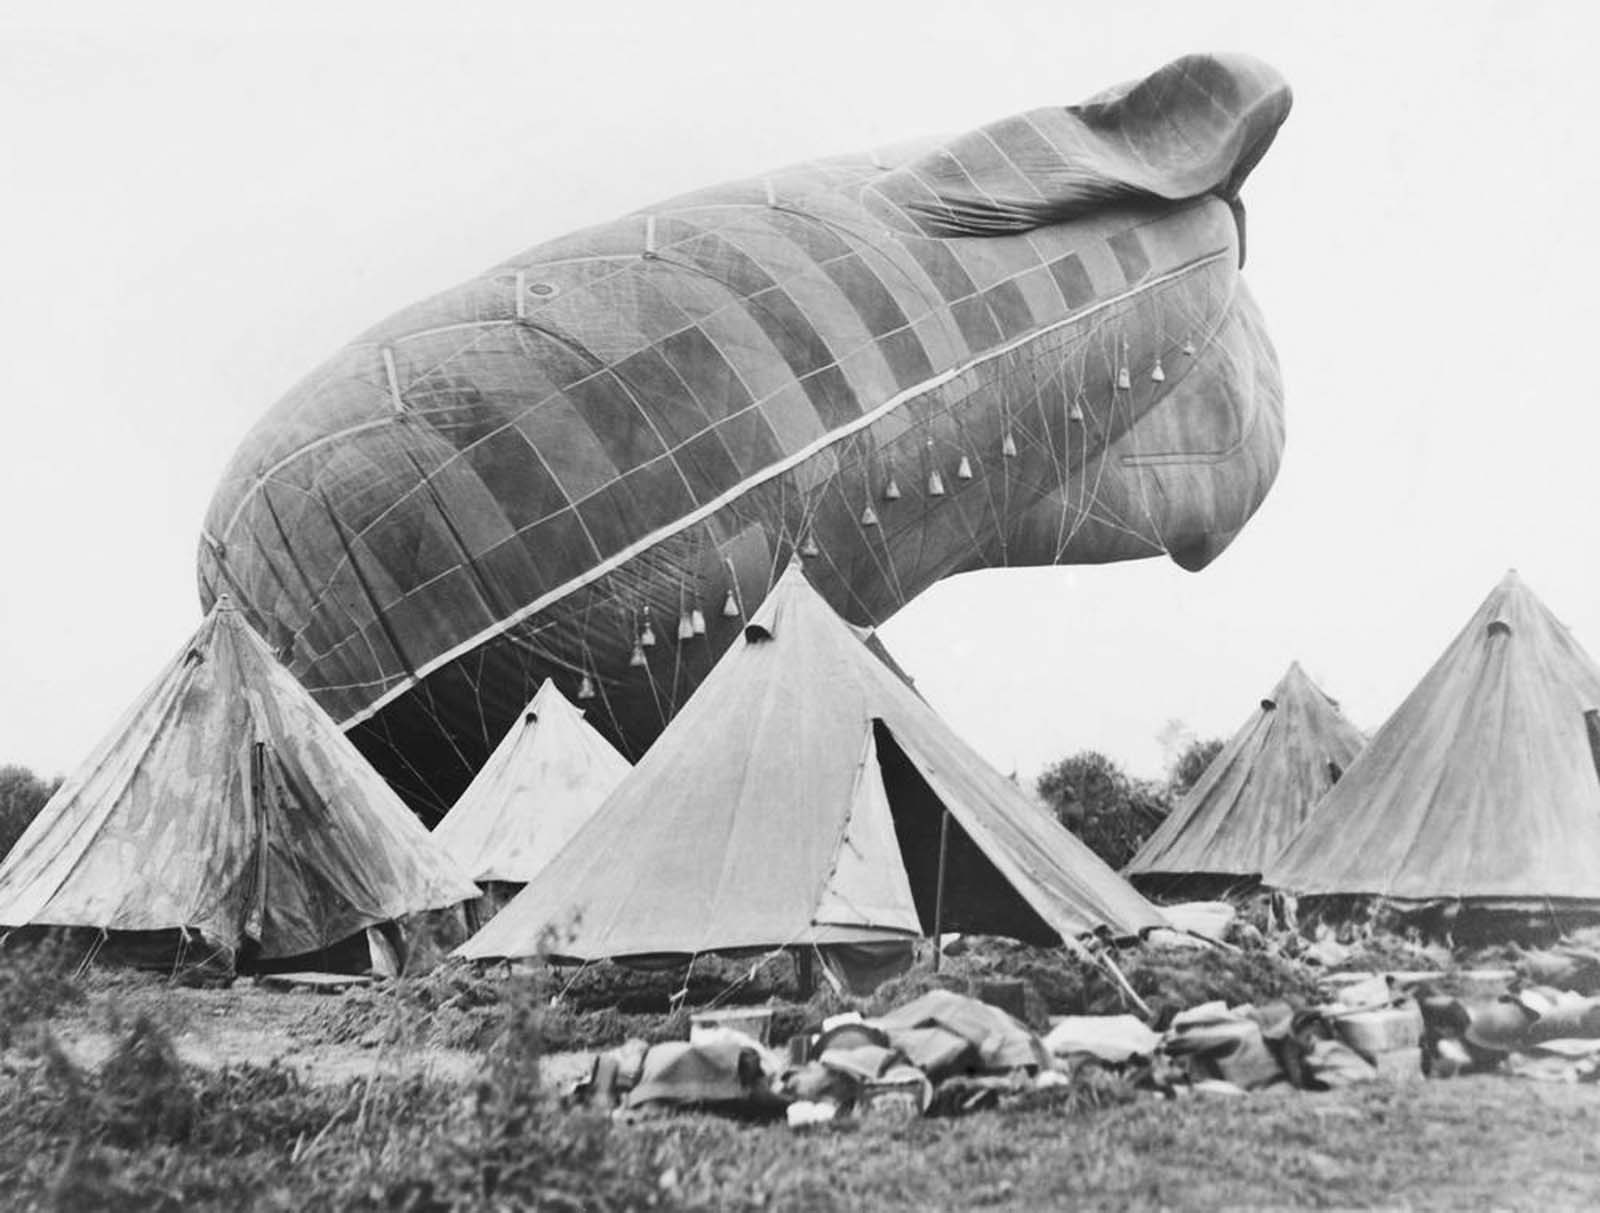 An Australian Royal Flying Corps balloon on the western front in Belgium. 1917.